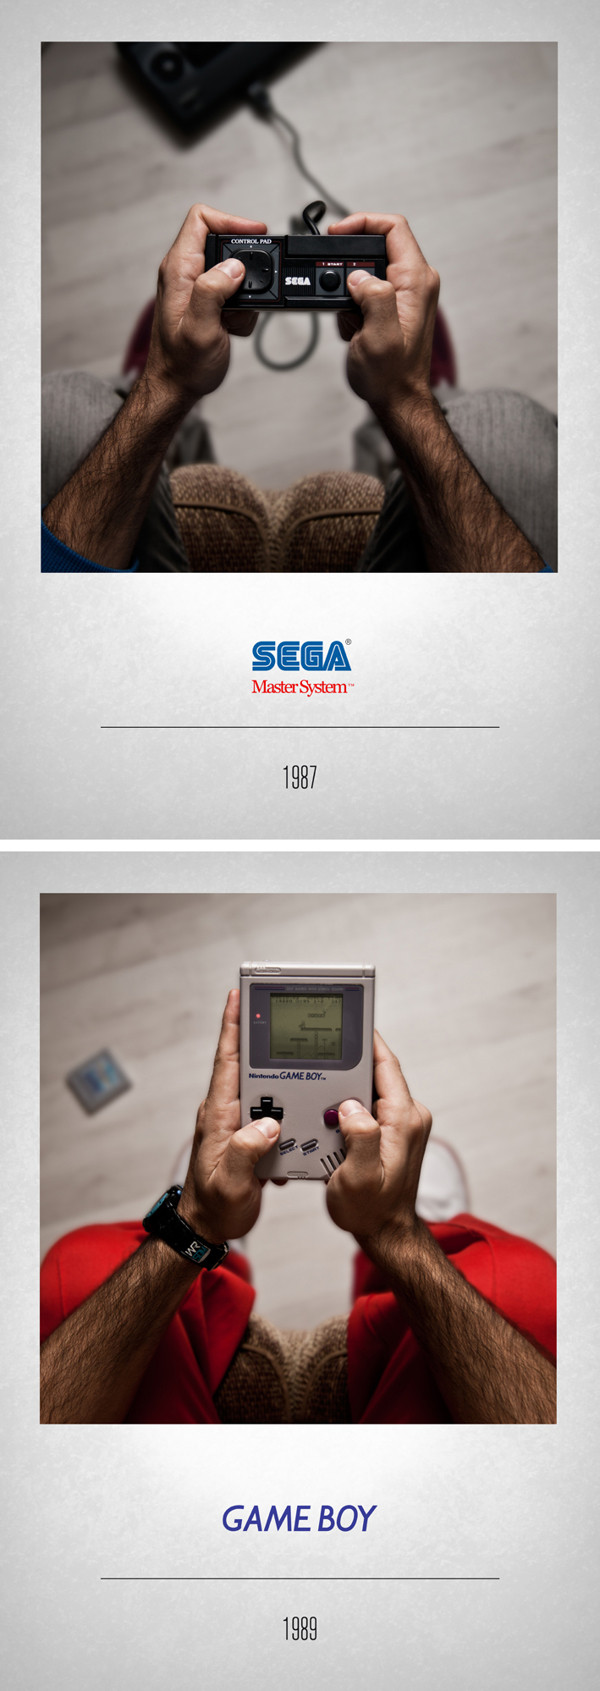 Sega Master System 1987 – Game Boy 1989